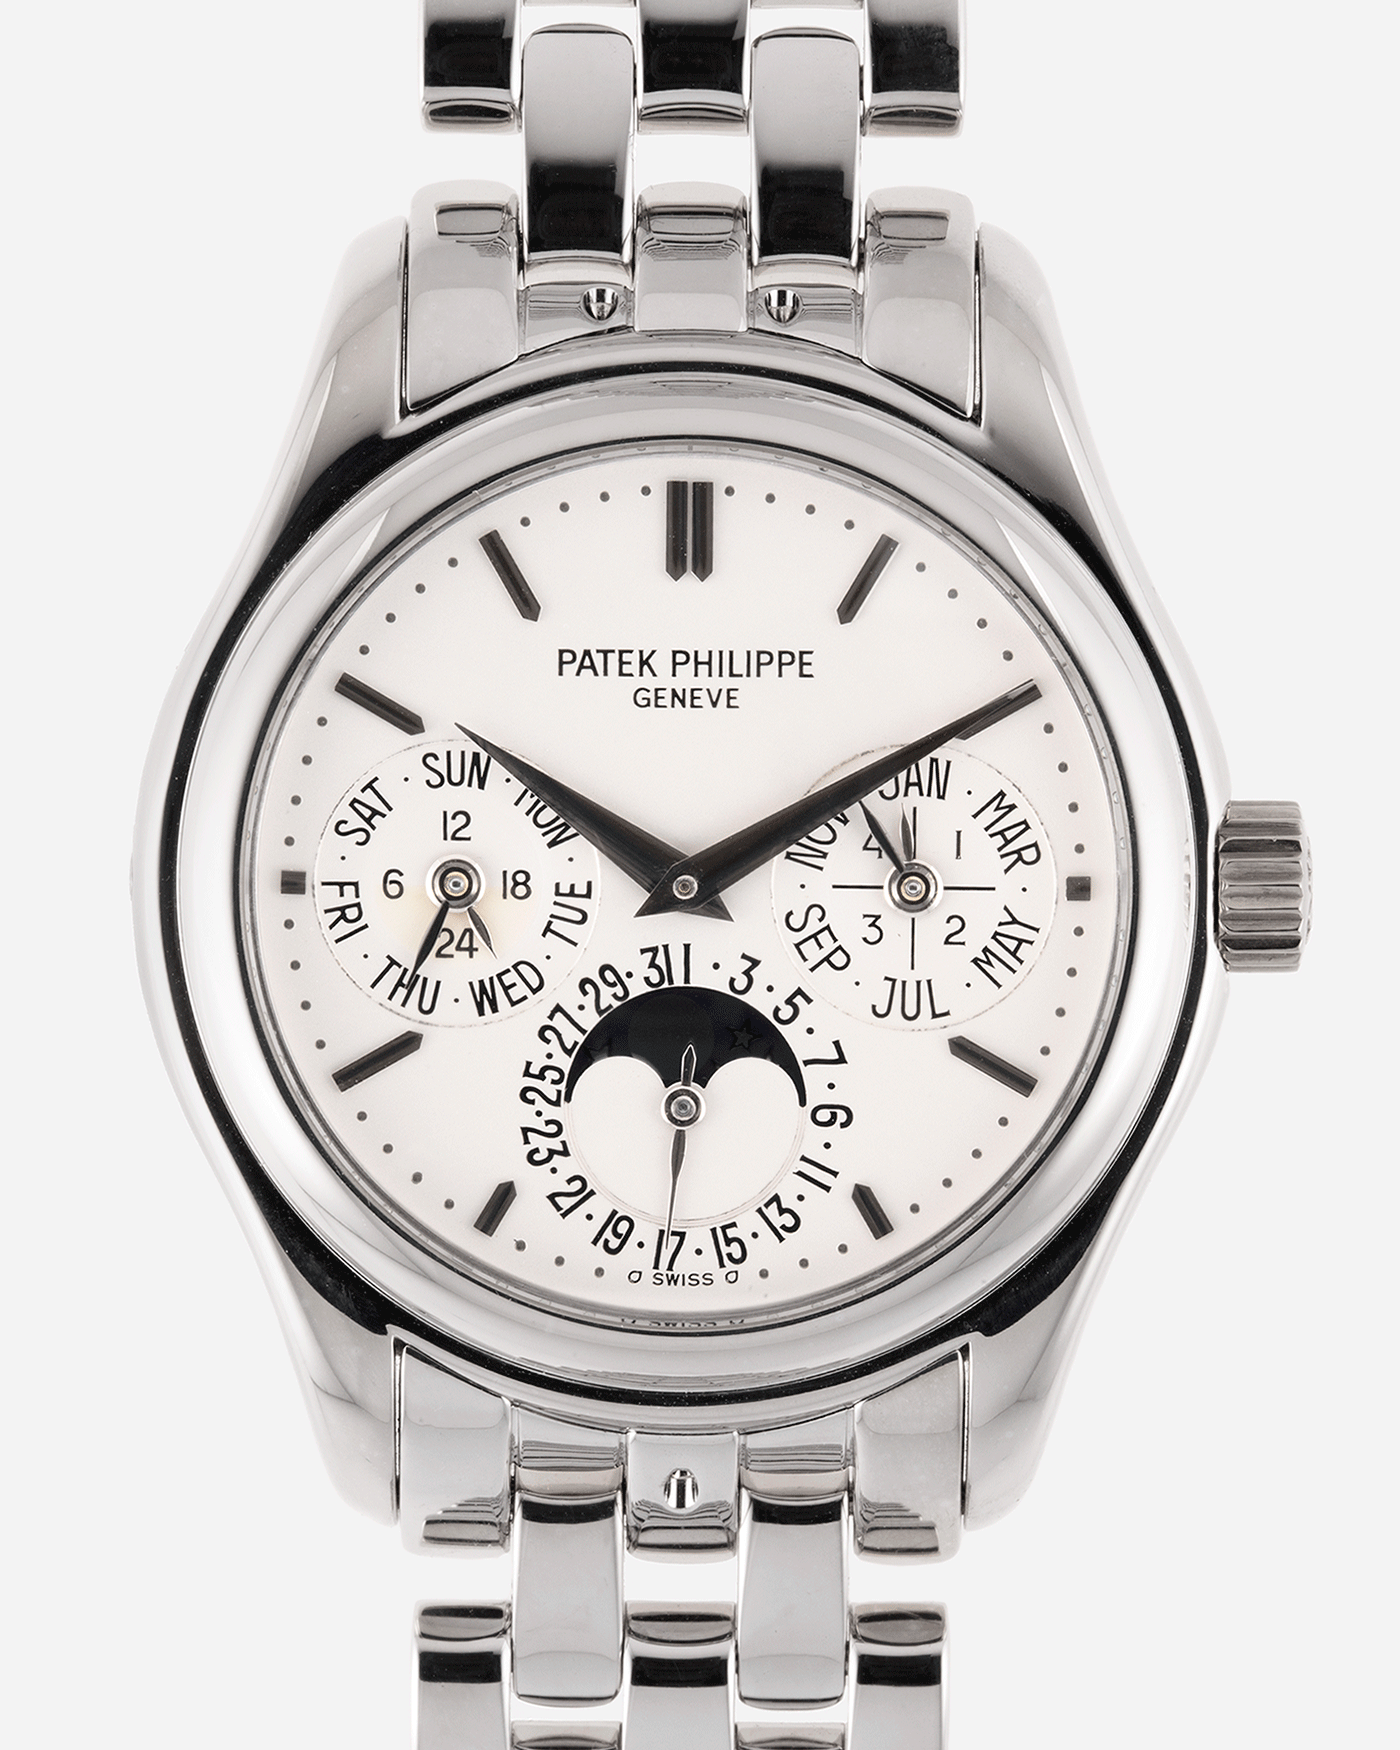 Brand: Patek Philippe Year: 2006 Model: Perpetual Calendar Reference Number: 5136G Material: 18k White Gold Movement: Cal 240Q Case Diameter: 37mm Bracelet: 18k White Gold Patek Philippe Bracelet